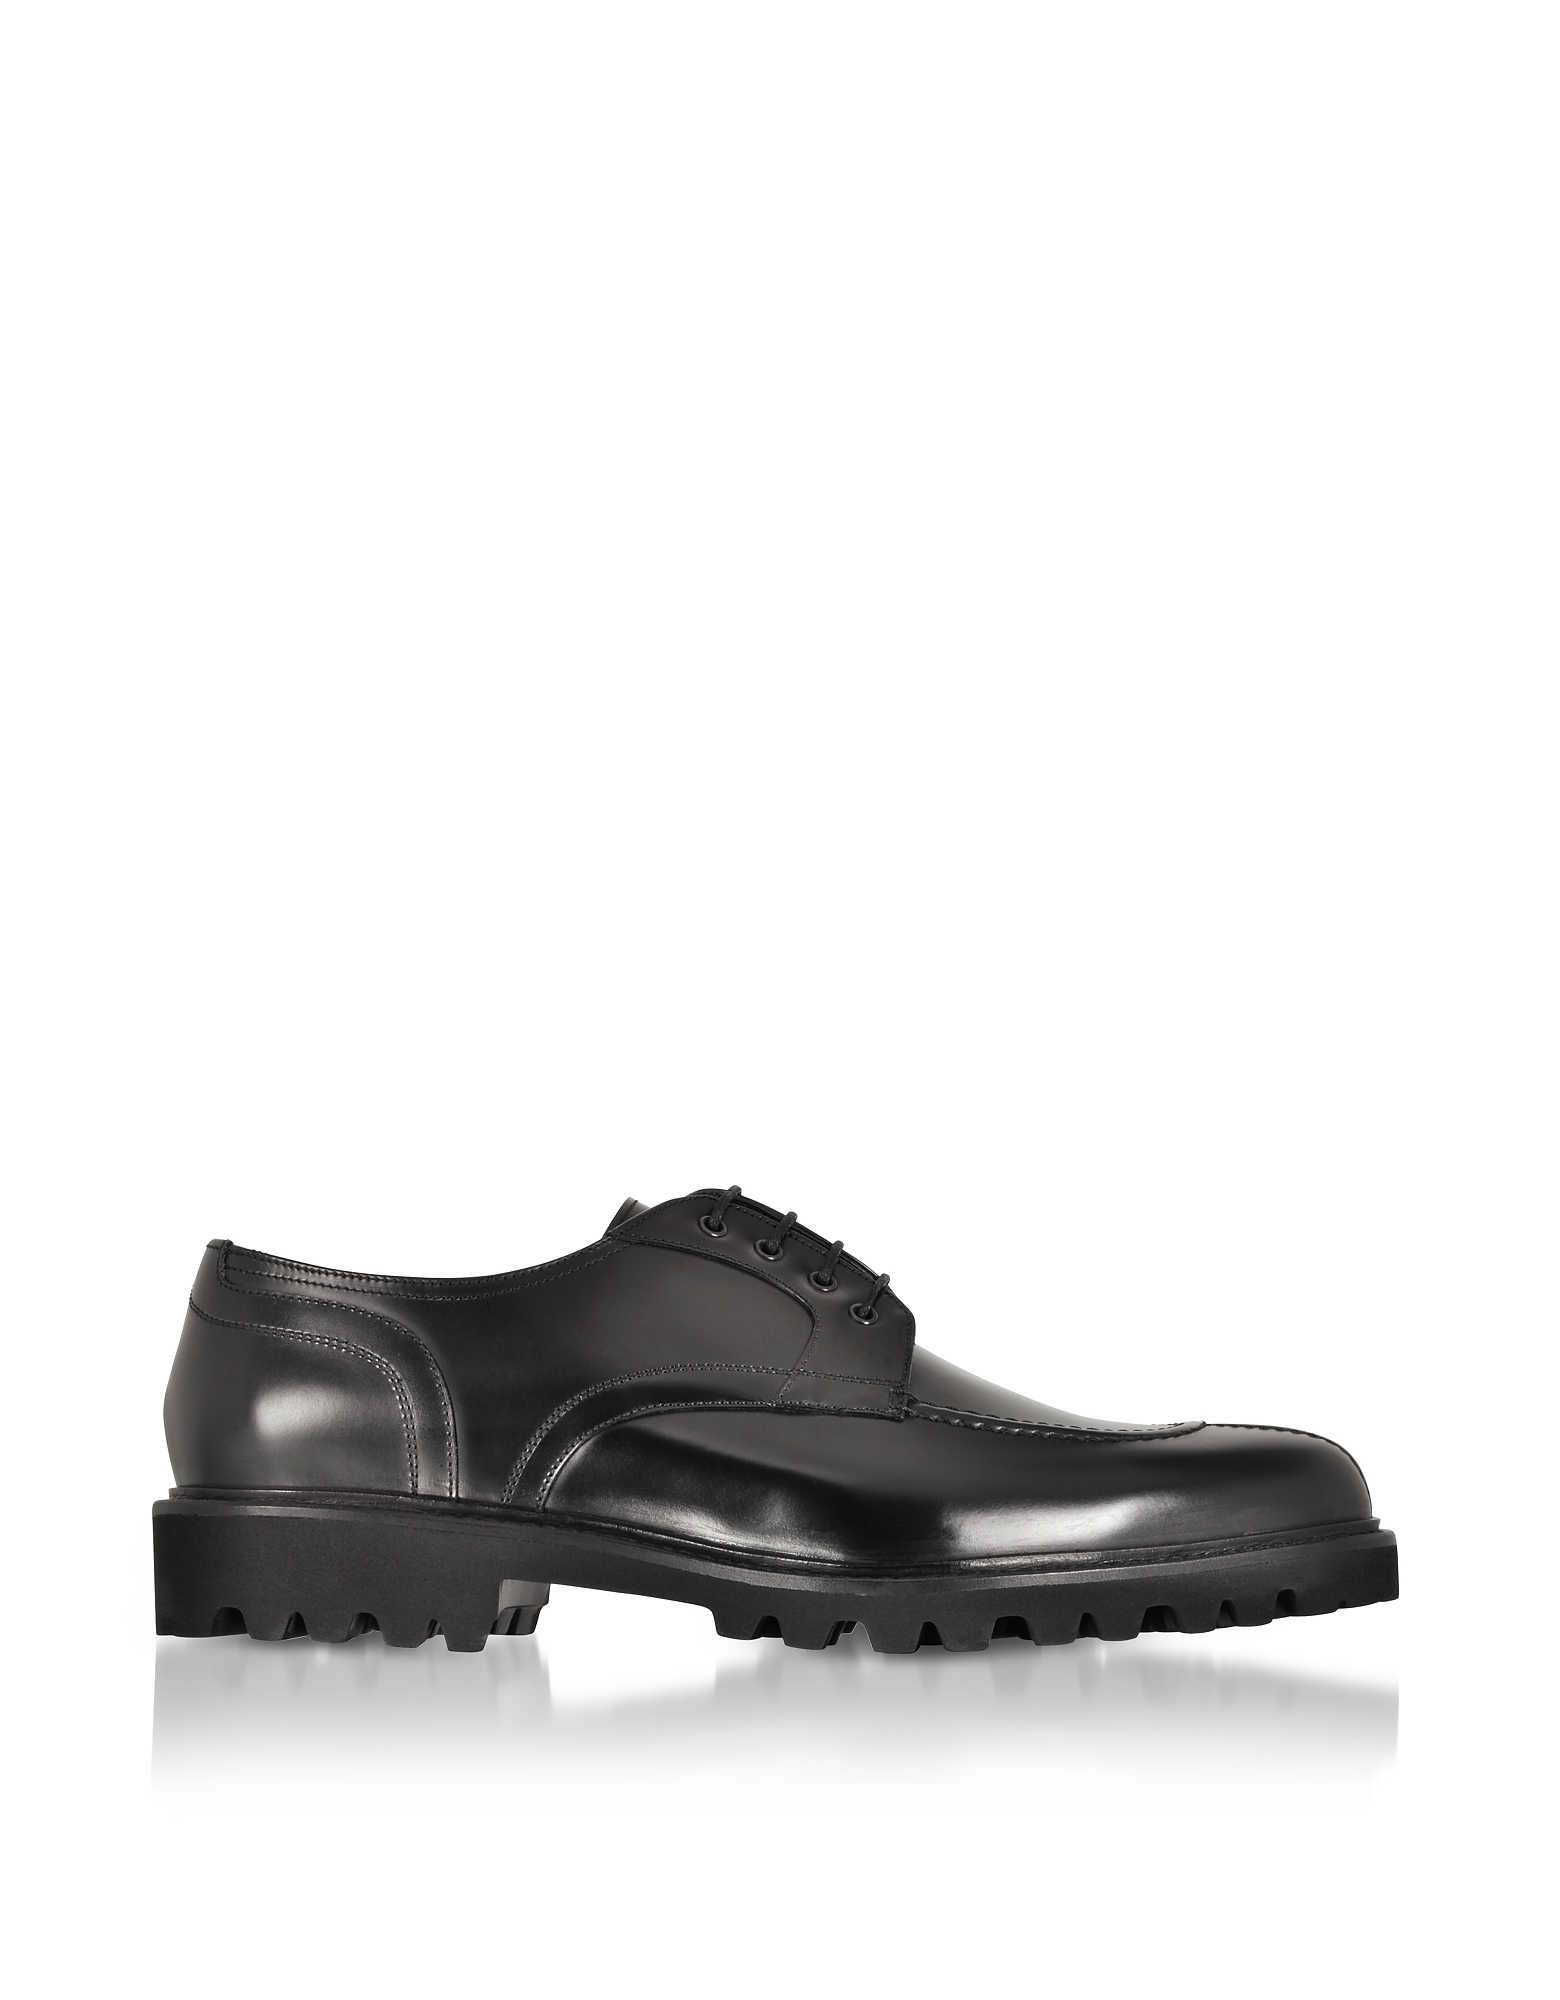 Fratelli Borgioli Designer Shoes, Black Leather Casual Derby Extralight Sole